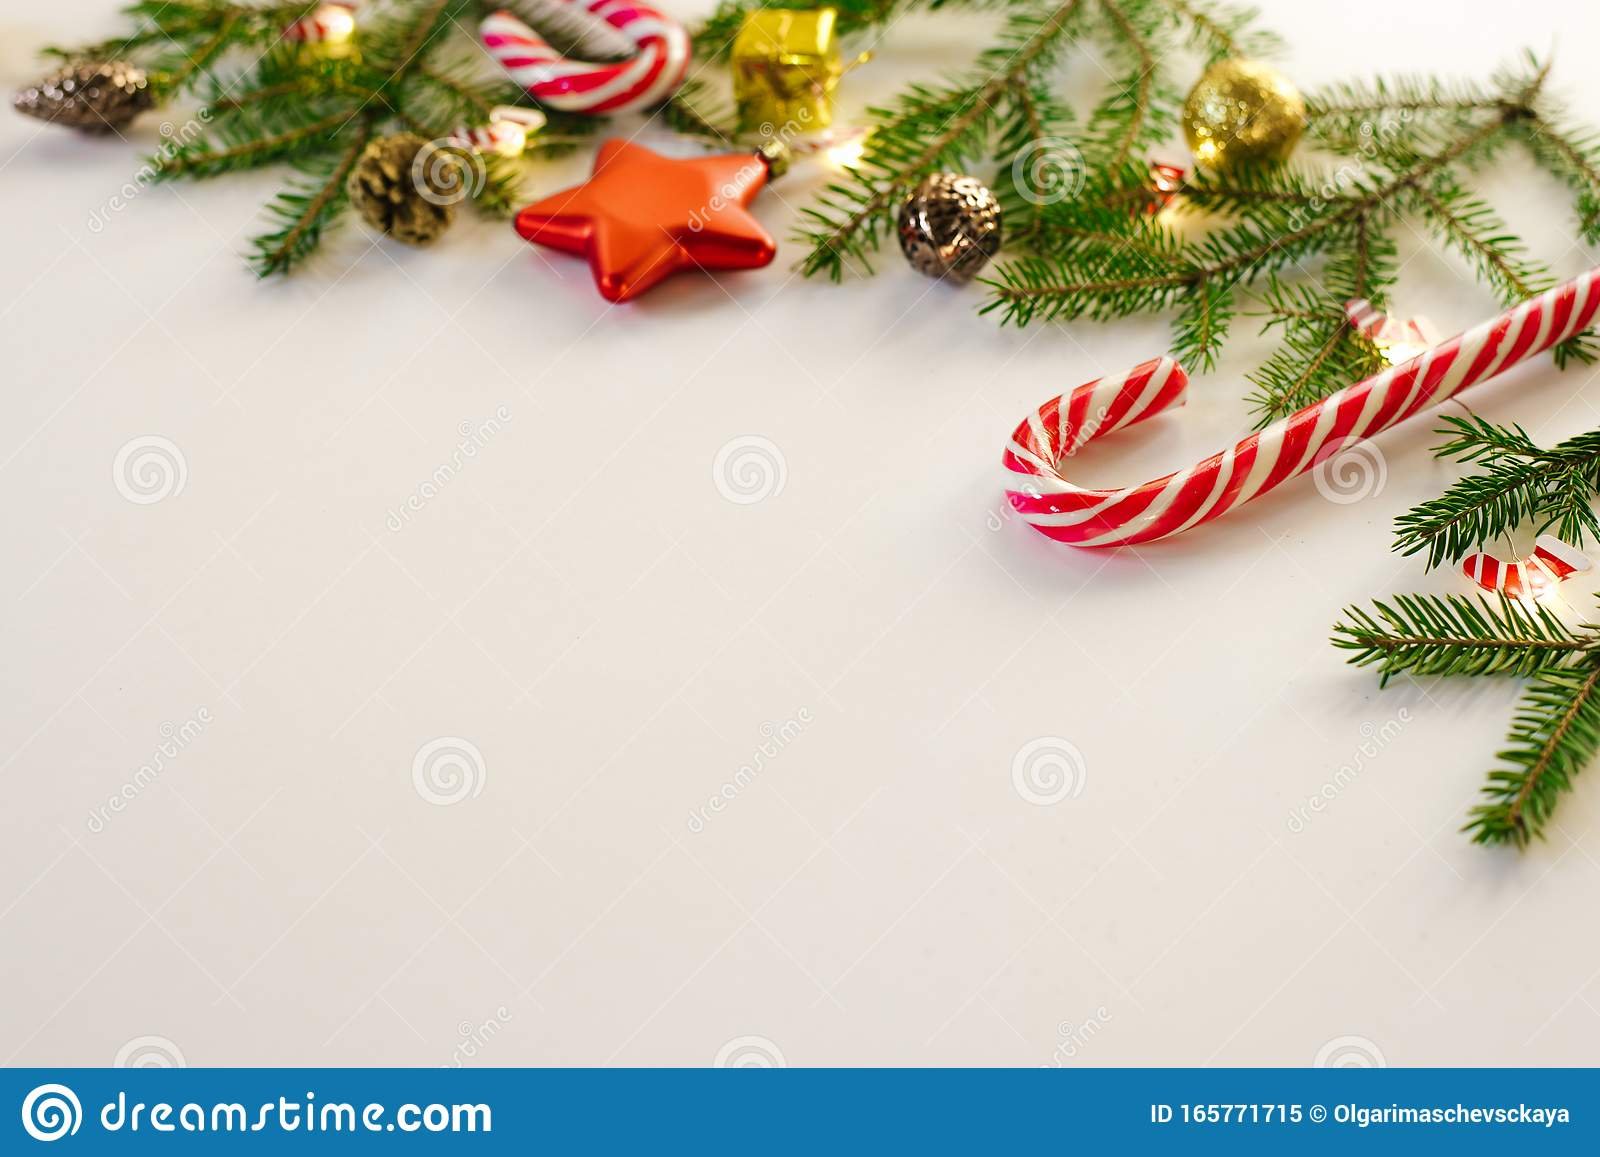 Christmas Frame Of Fir Branches And Gold And Brown Christmas Tree Toys Mint Candy Canes And Burning Lights On White Background C Stock Image Image Of Gold Canes 165771715